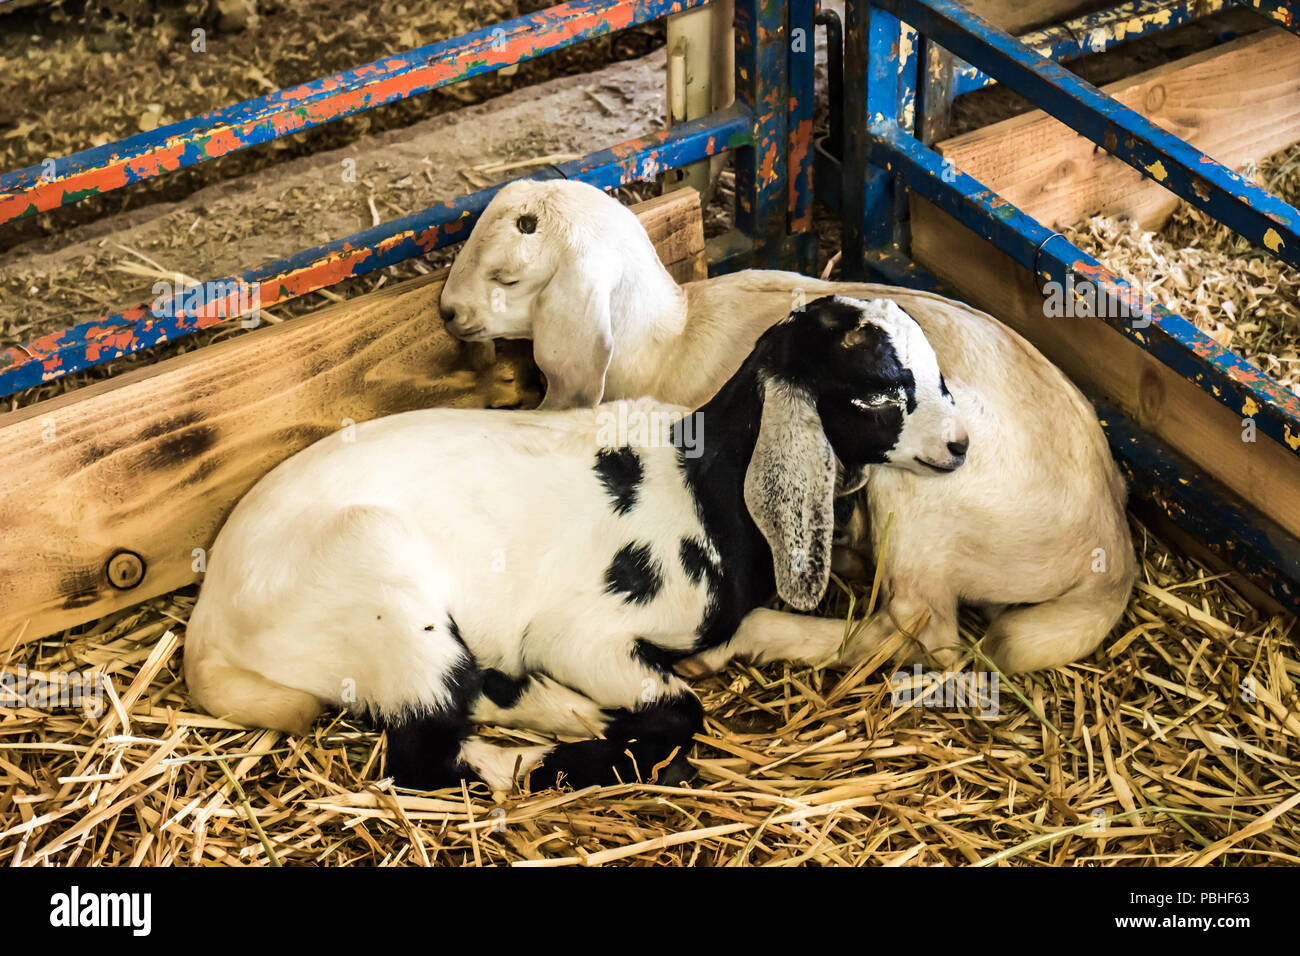 Two Young Lambs Asleep In Corner Of Pen - Stock Image